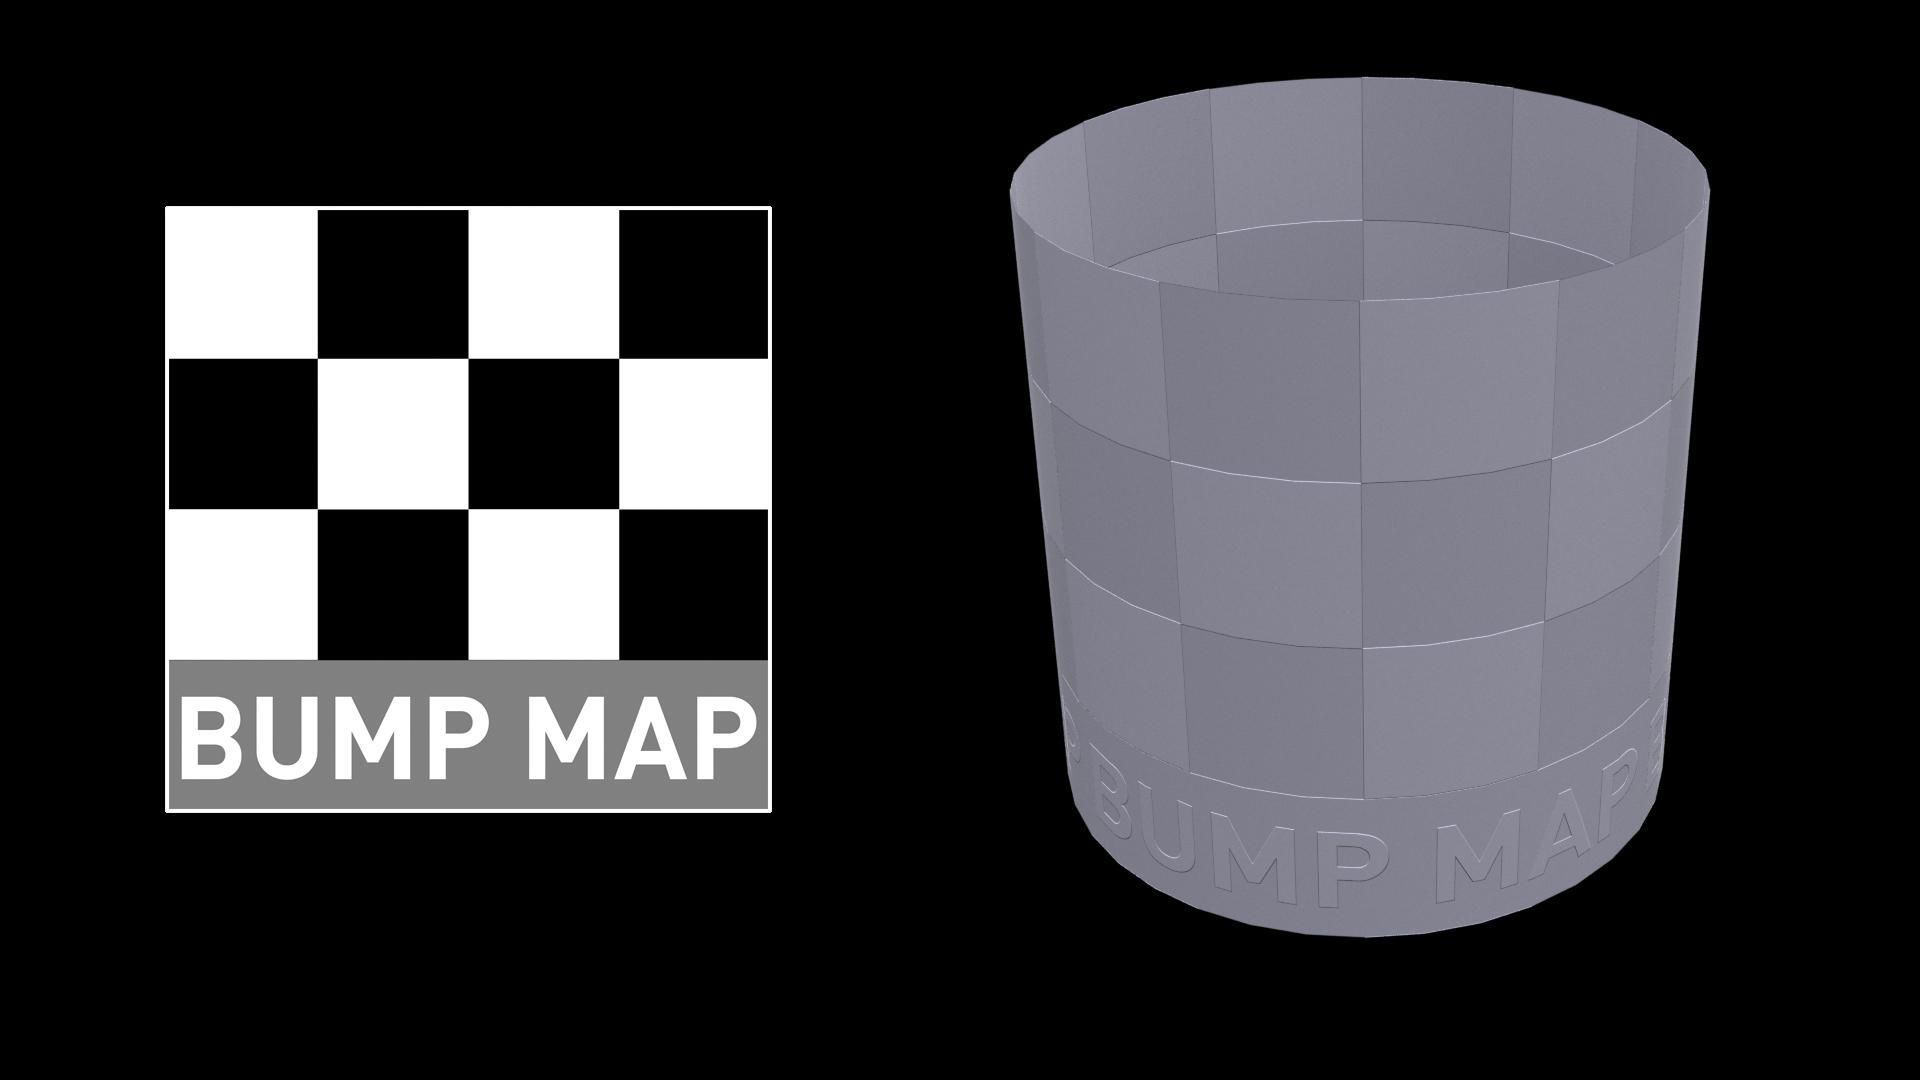 A 3D tube with a black and white chequerboard bump map